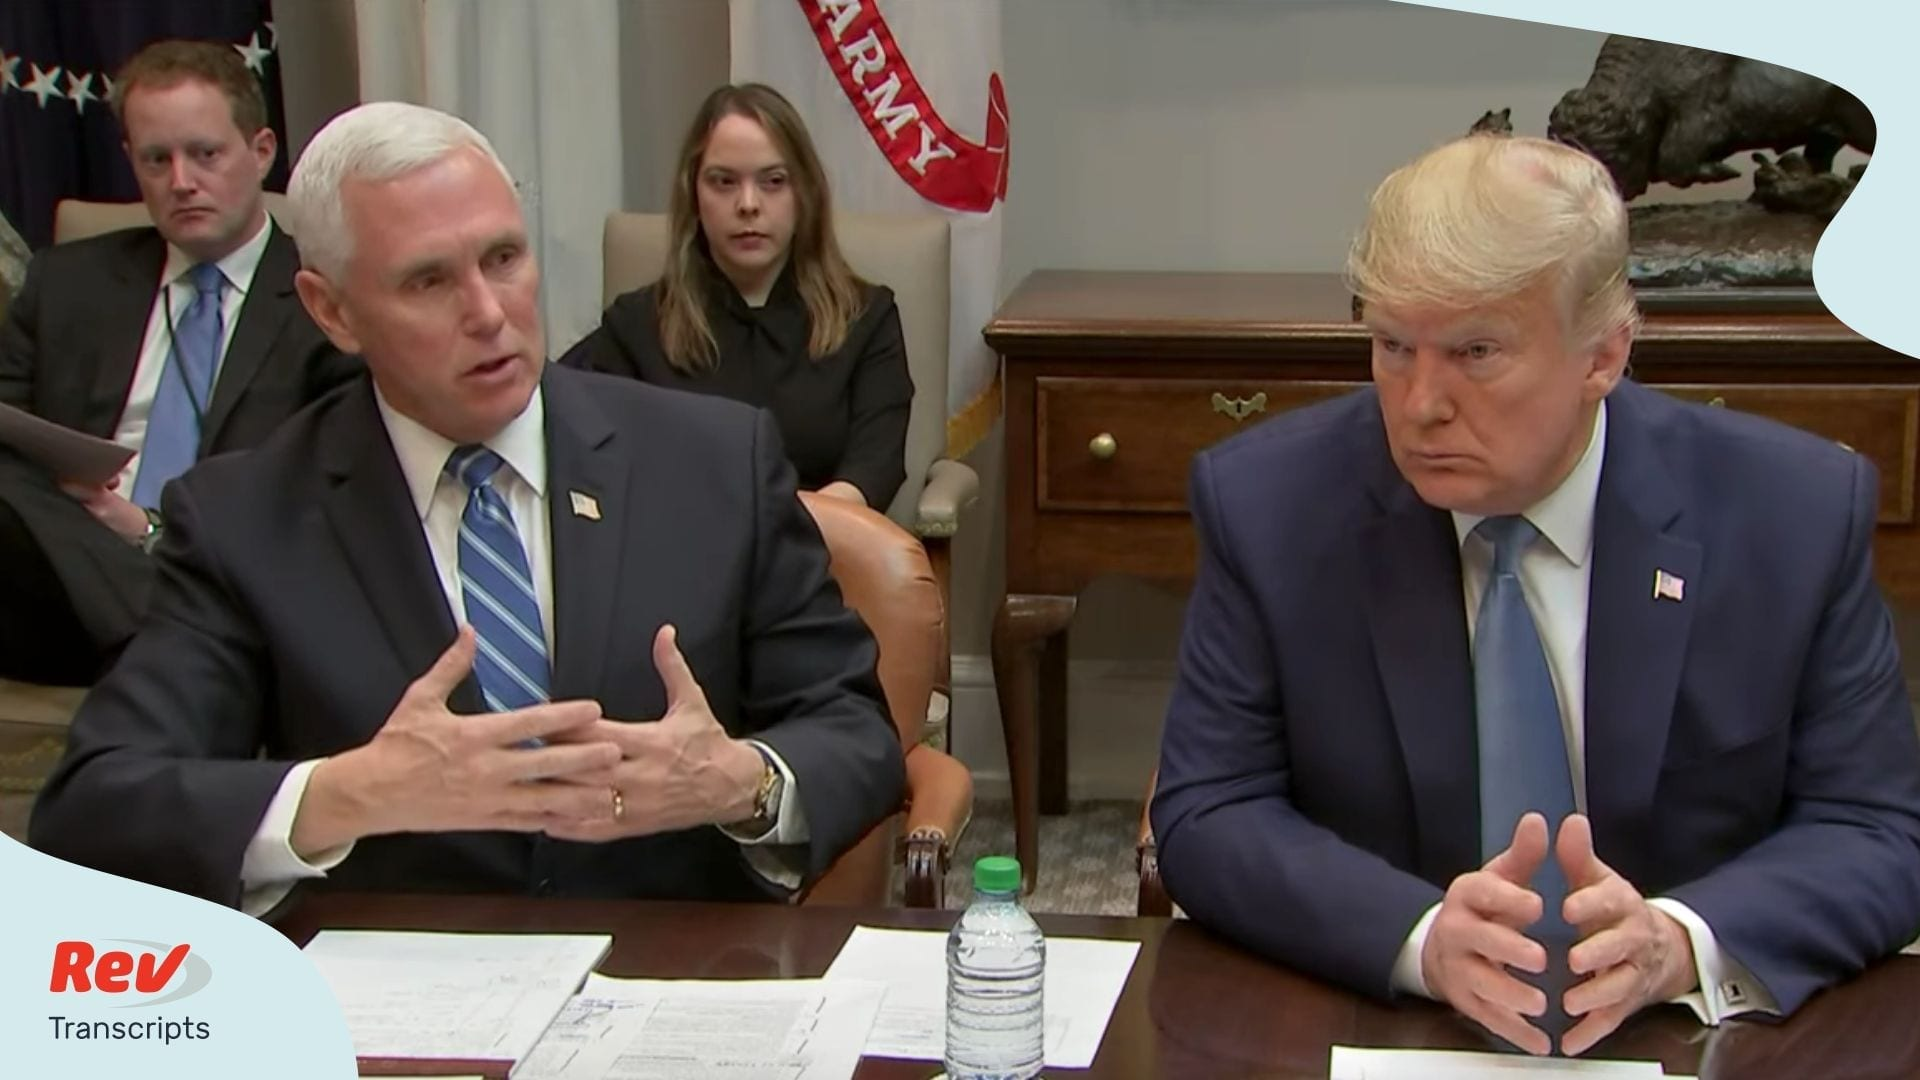 Donald Trump Mike Pence Meet with Health Insurance CEOs